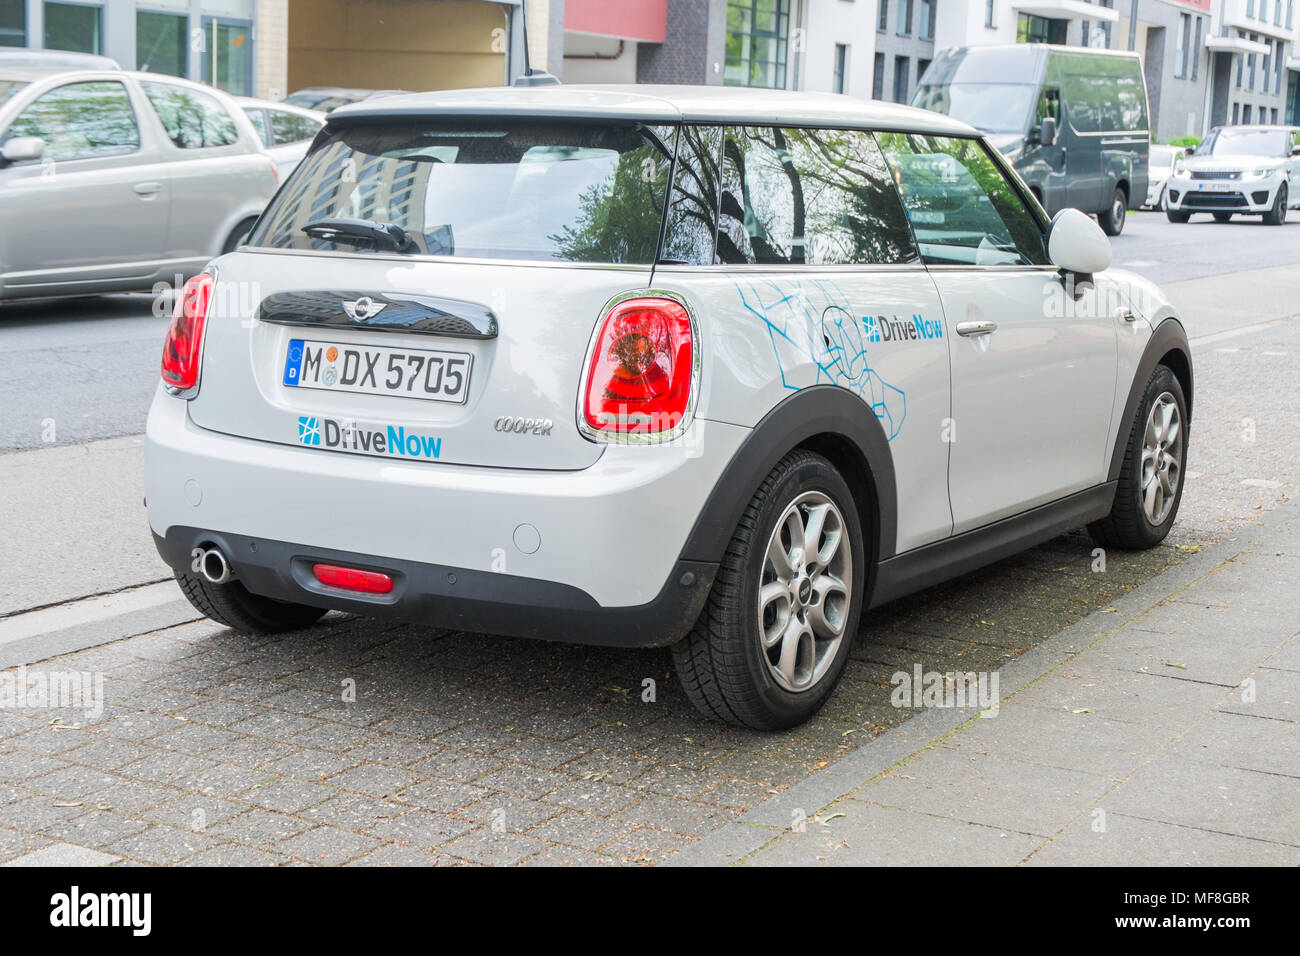 Drivenow Düsseldorf Sixt Rent A Car Stock Photos Sixt Rent A Car Stock Images Alamy